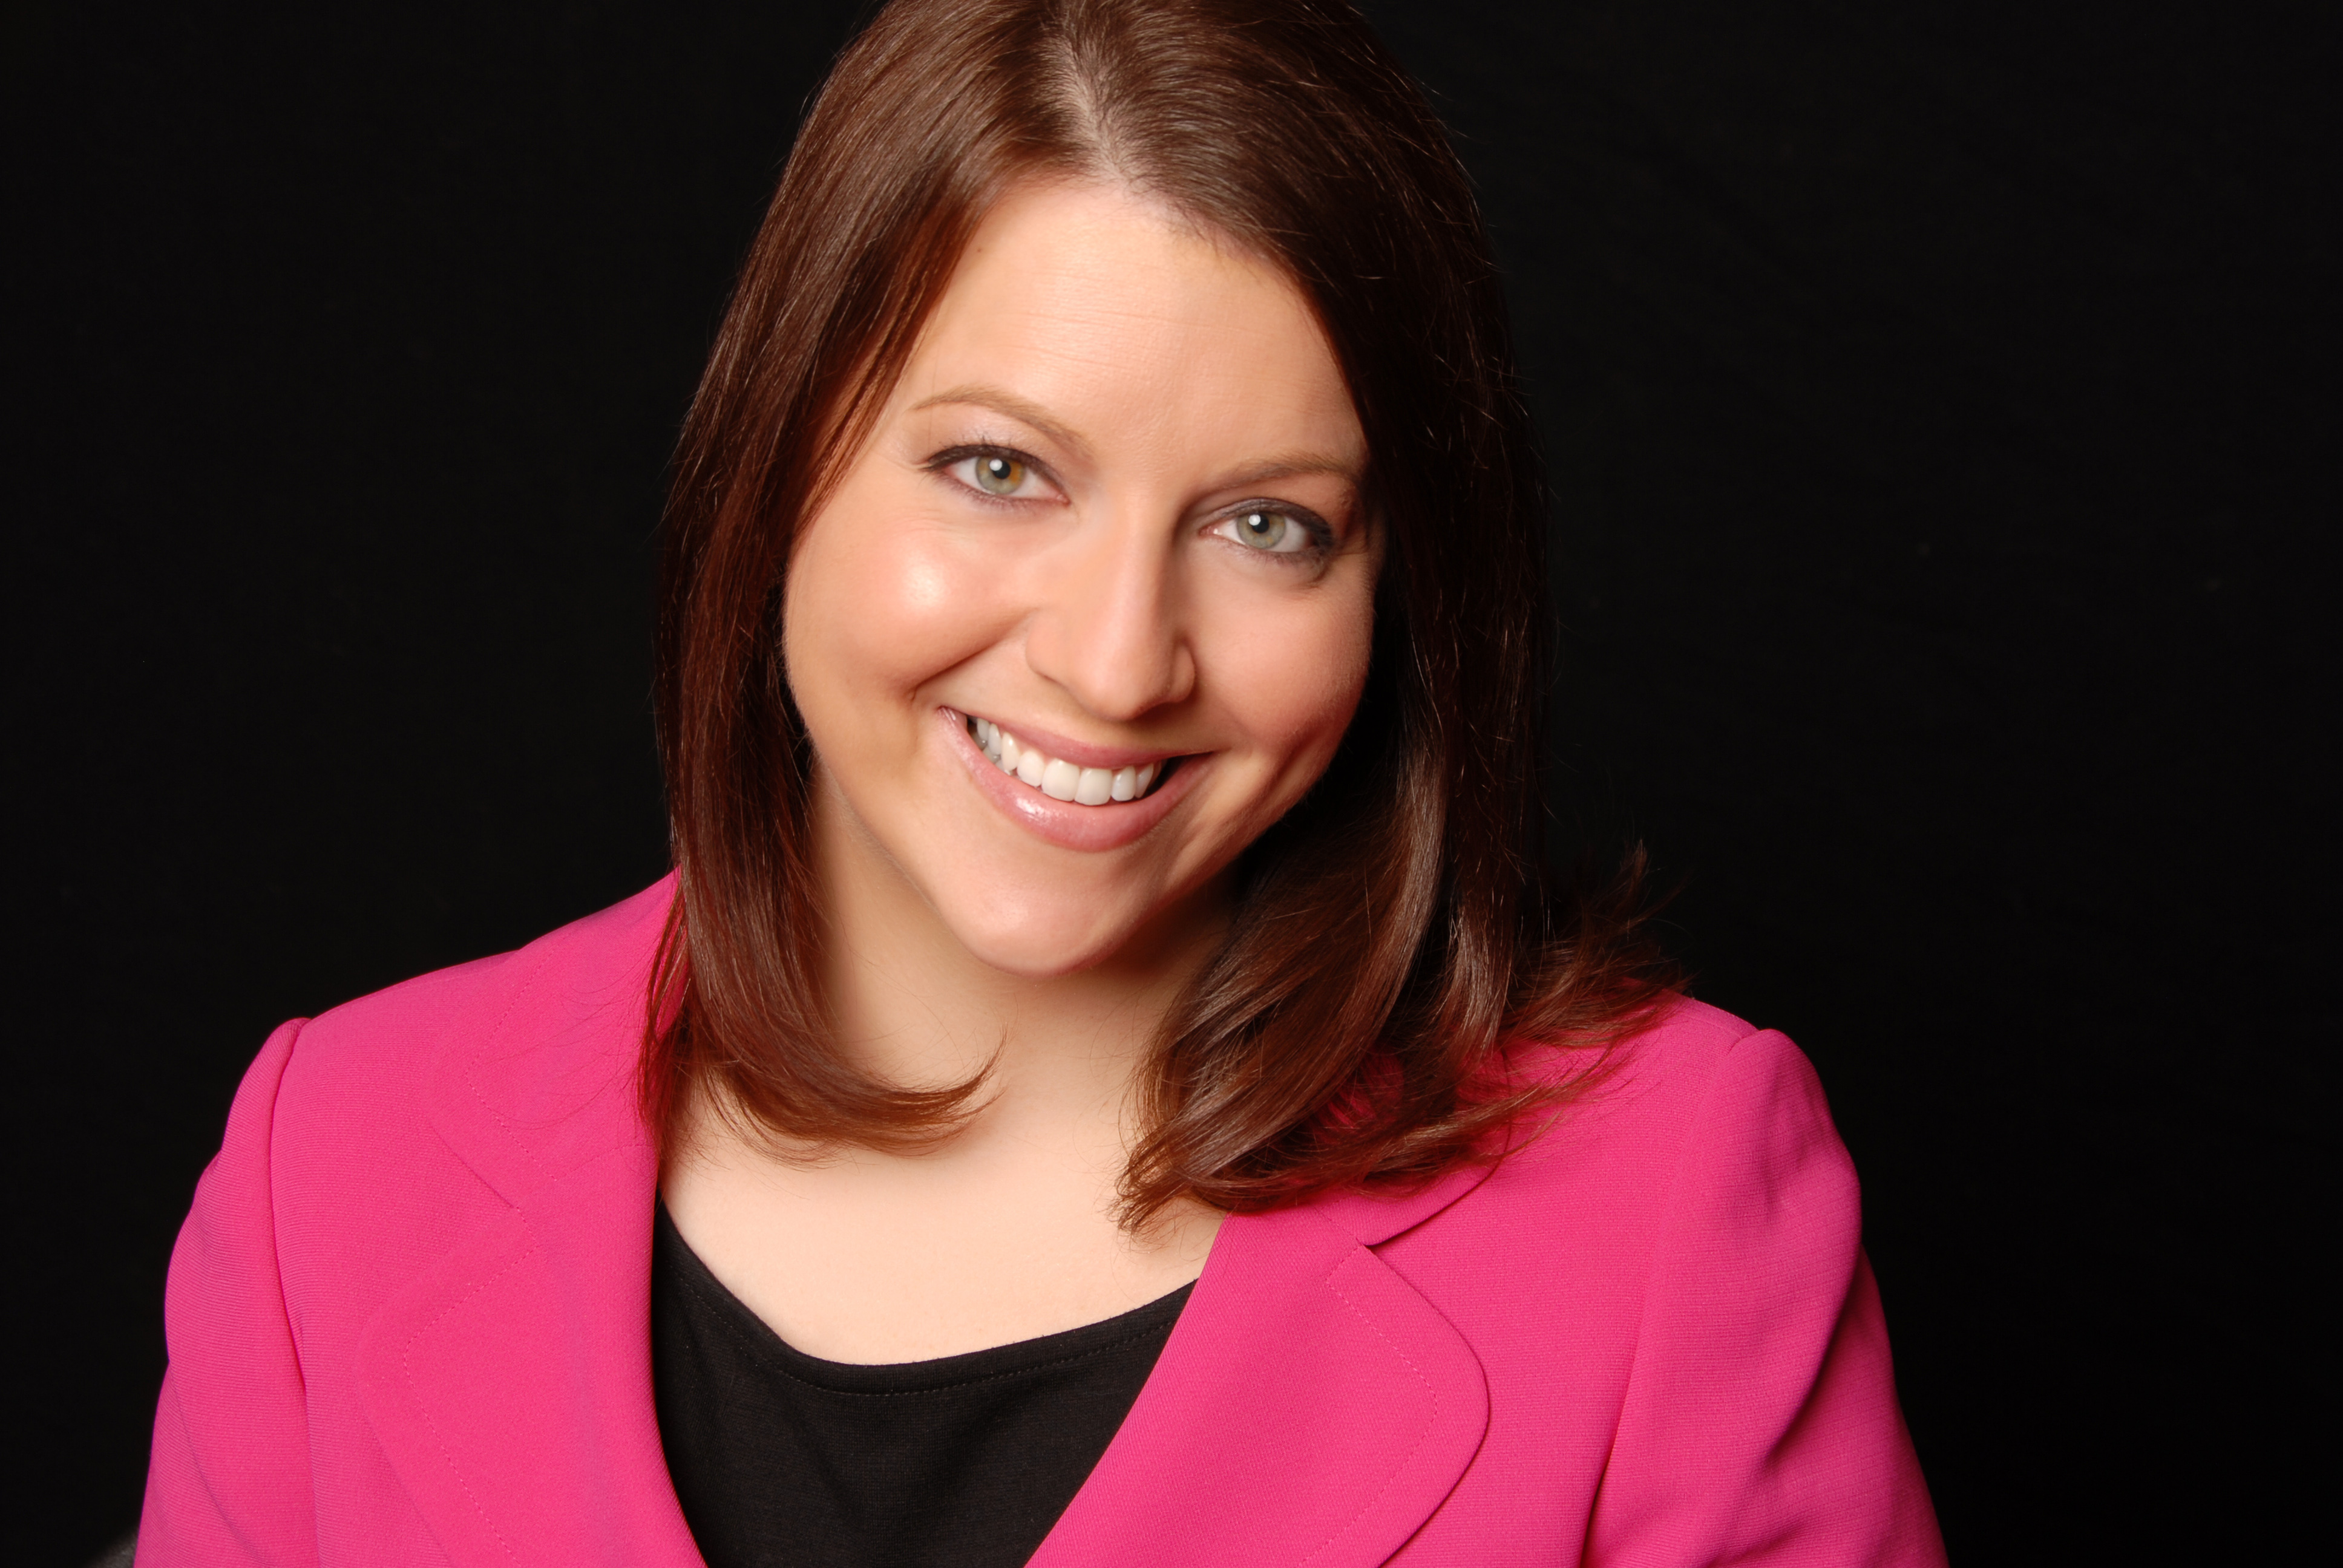 Interview with Marybeth Brush, your local REALTOR® for Lowry and Montclair.